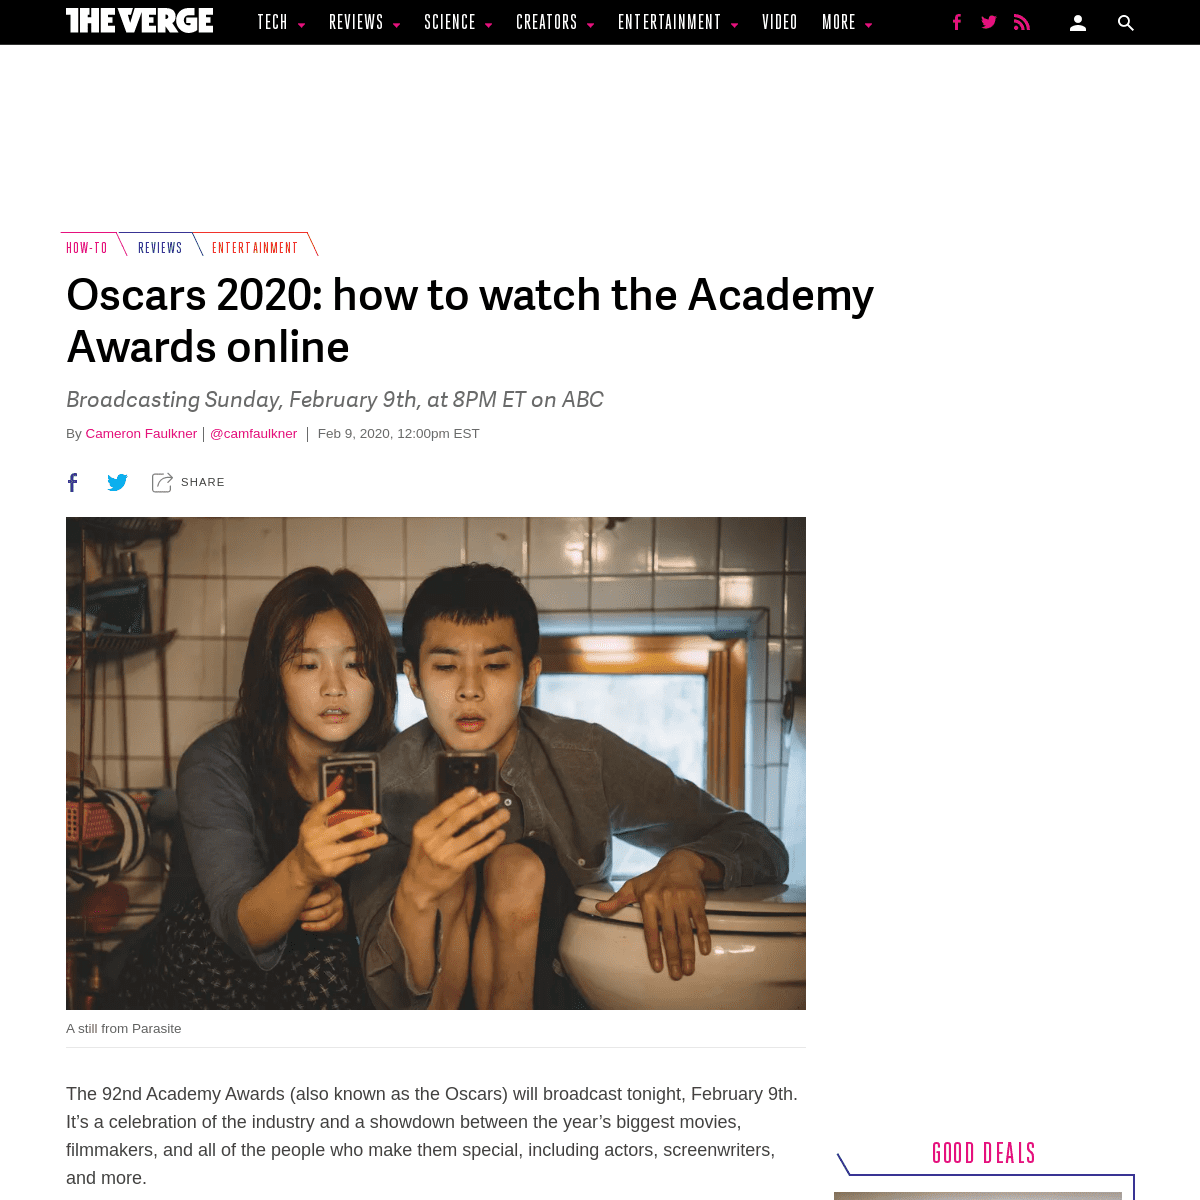 Oscars 2020- how to live stream the Academy Awards online - The Verge